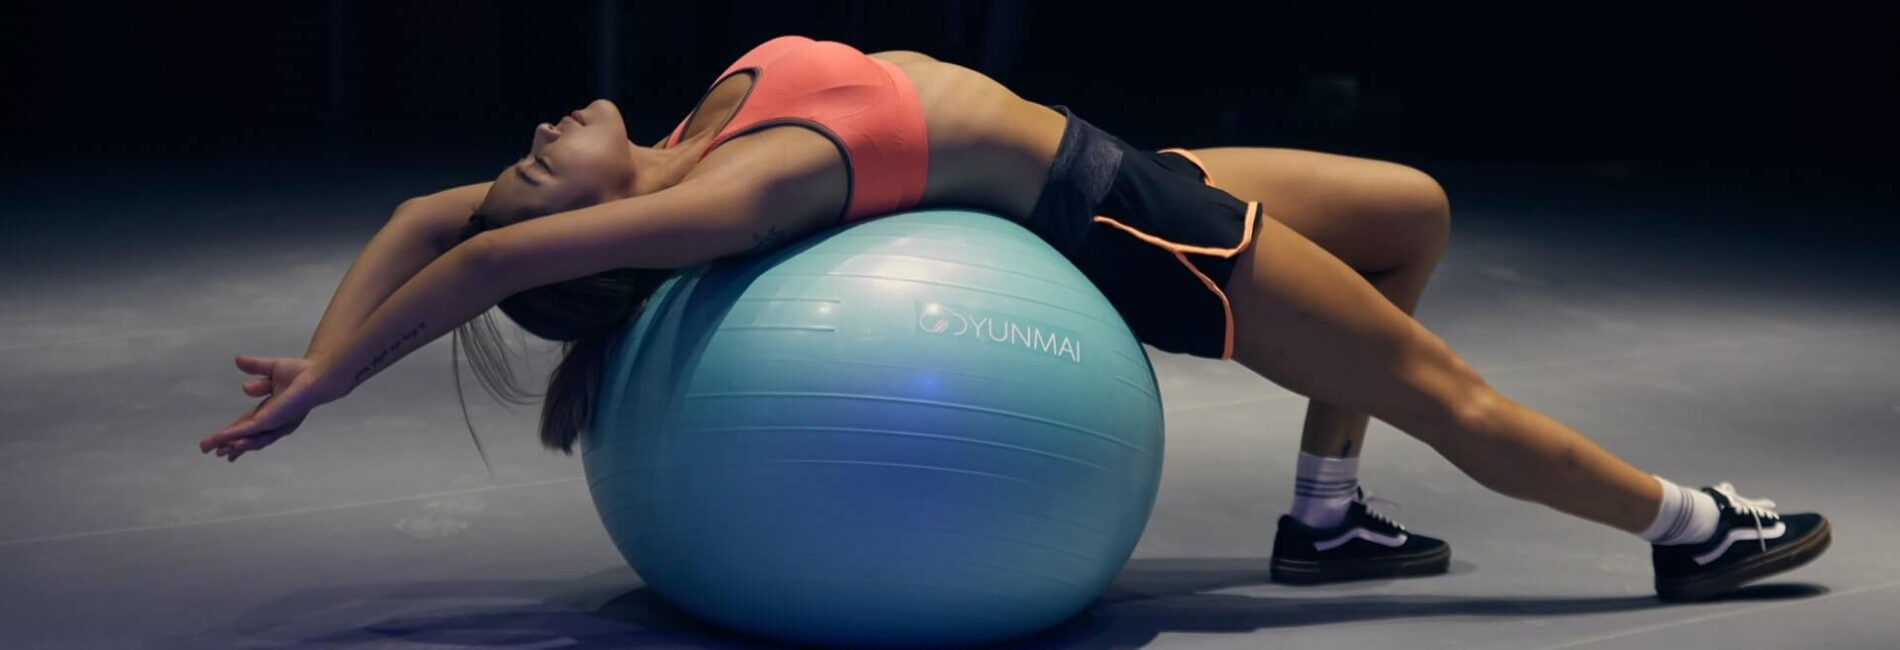 Pilates Balance Ball Chair For Better Posture